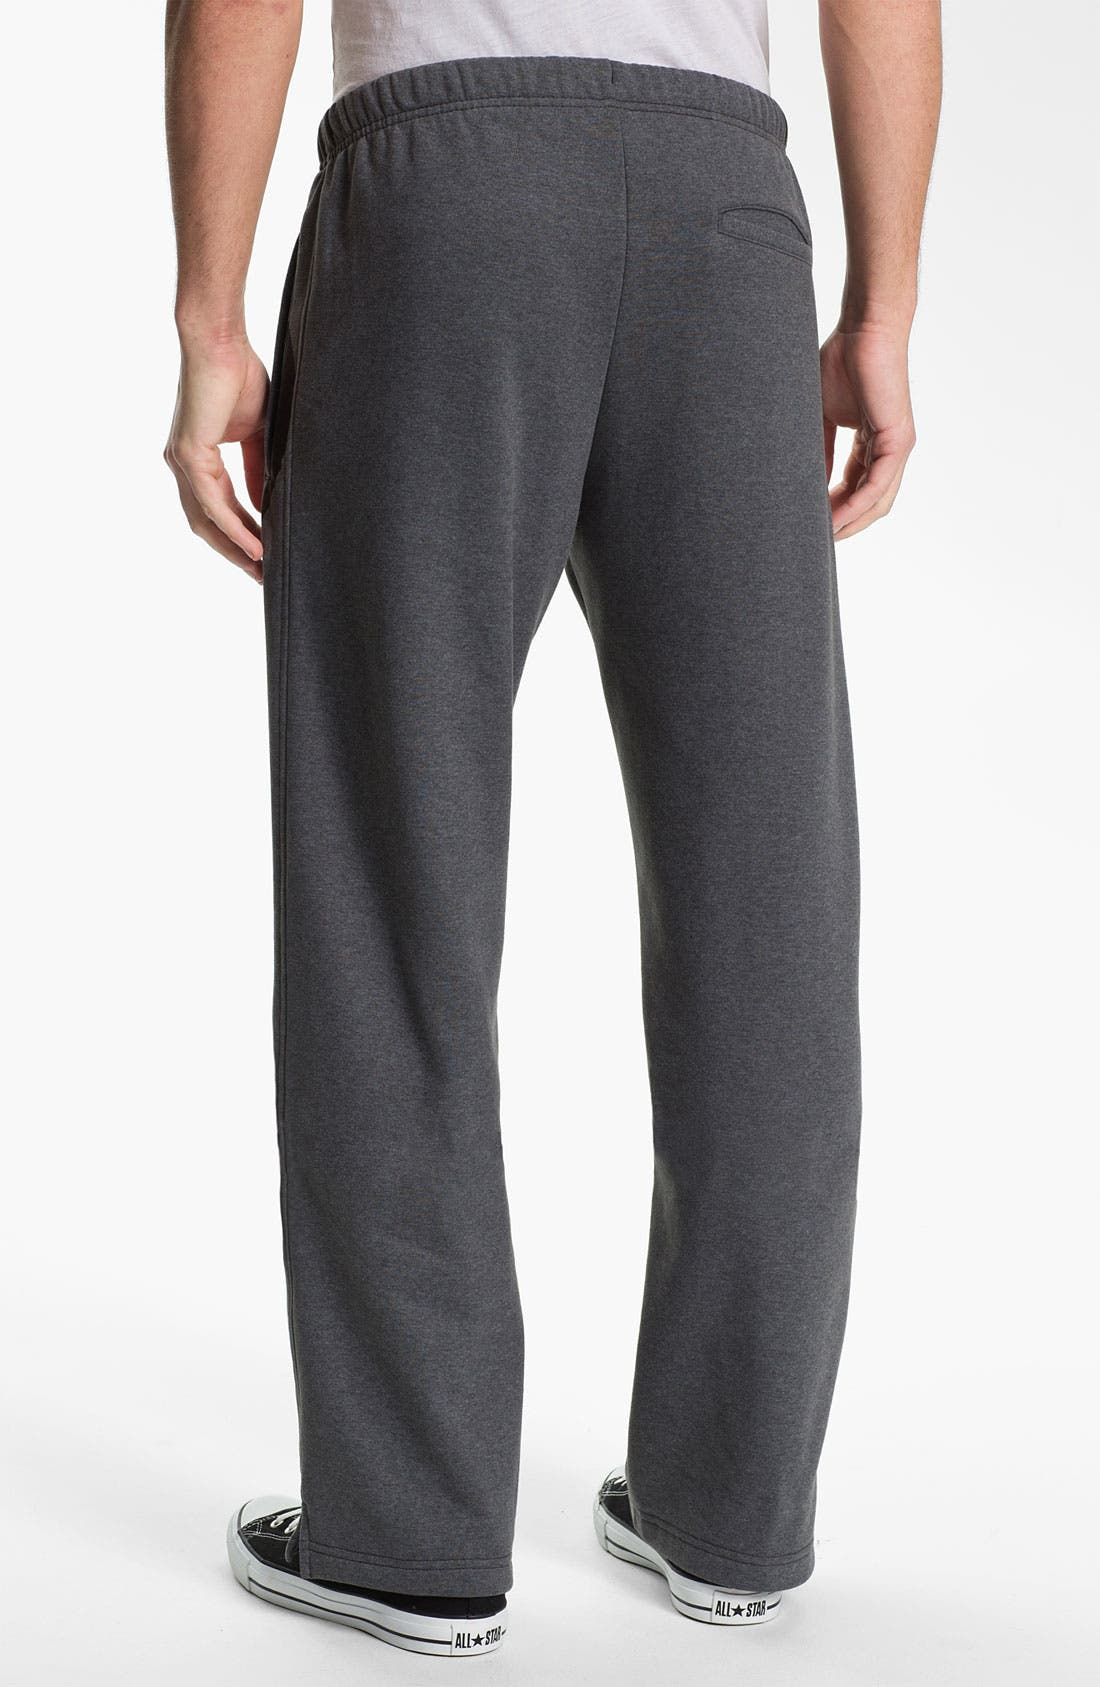 Alternate Image 2  - The North Face 'Rail Line' Athletic Pants